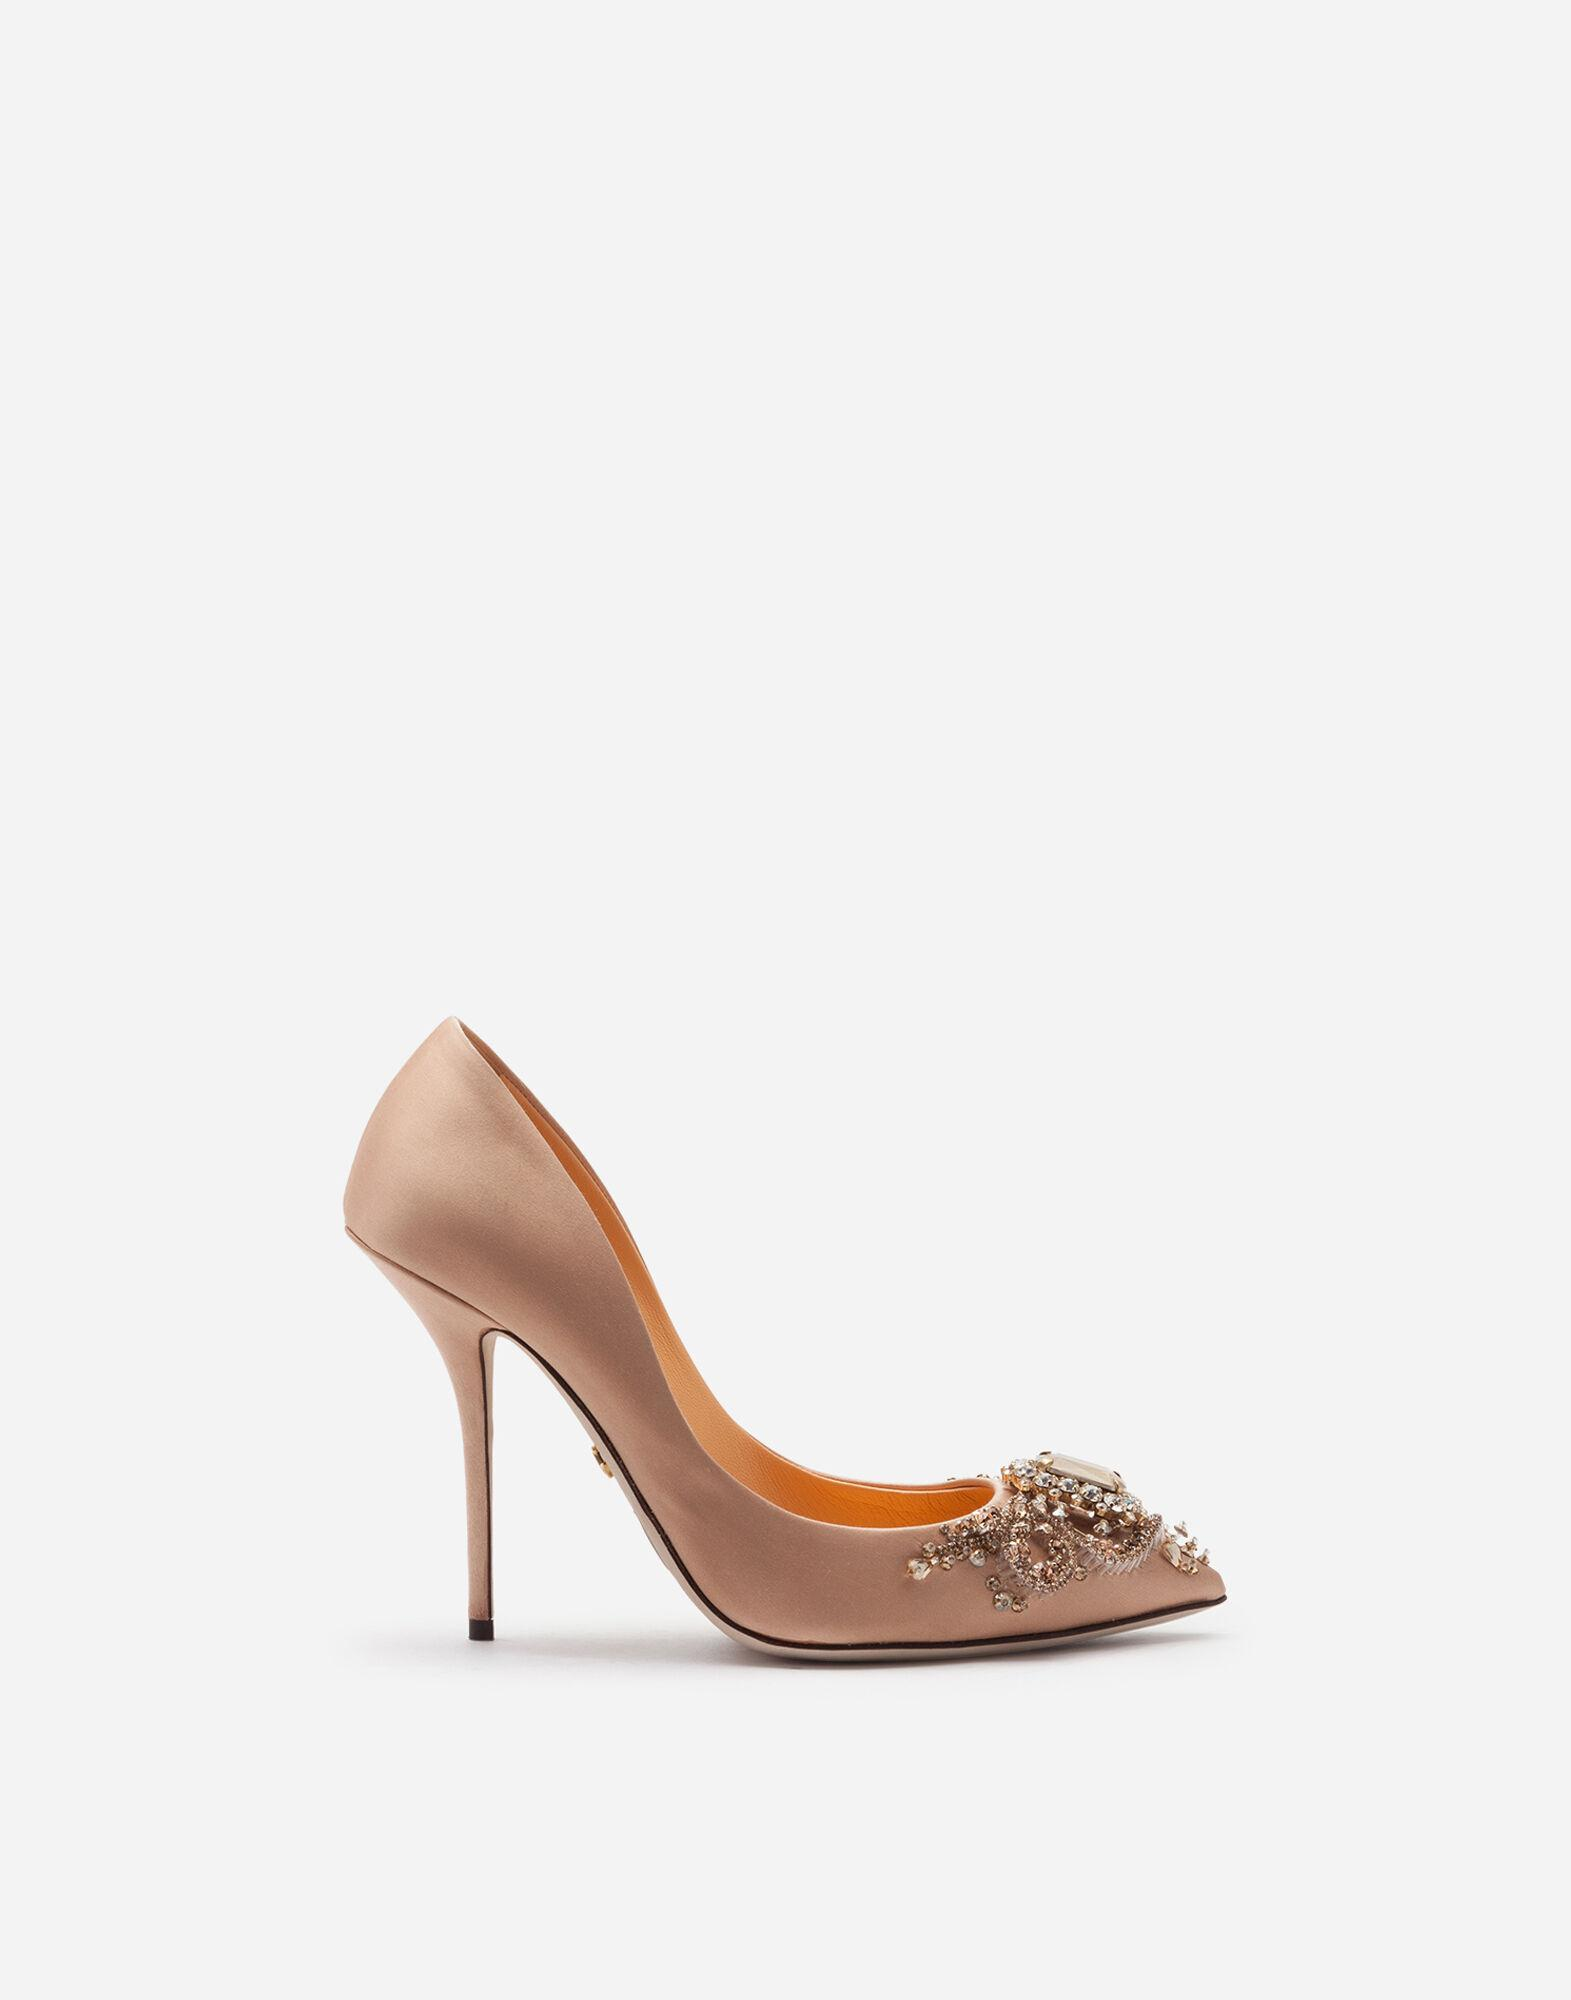 Satin pumps with bejeweled embellishment